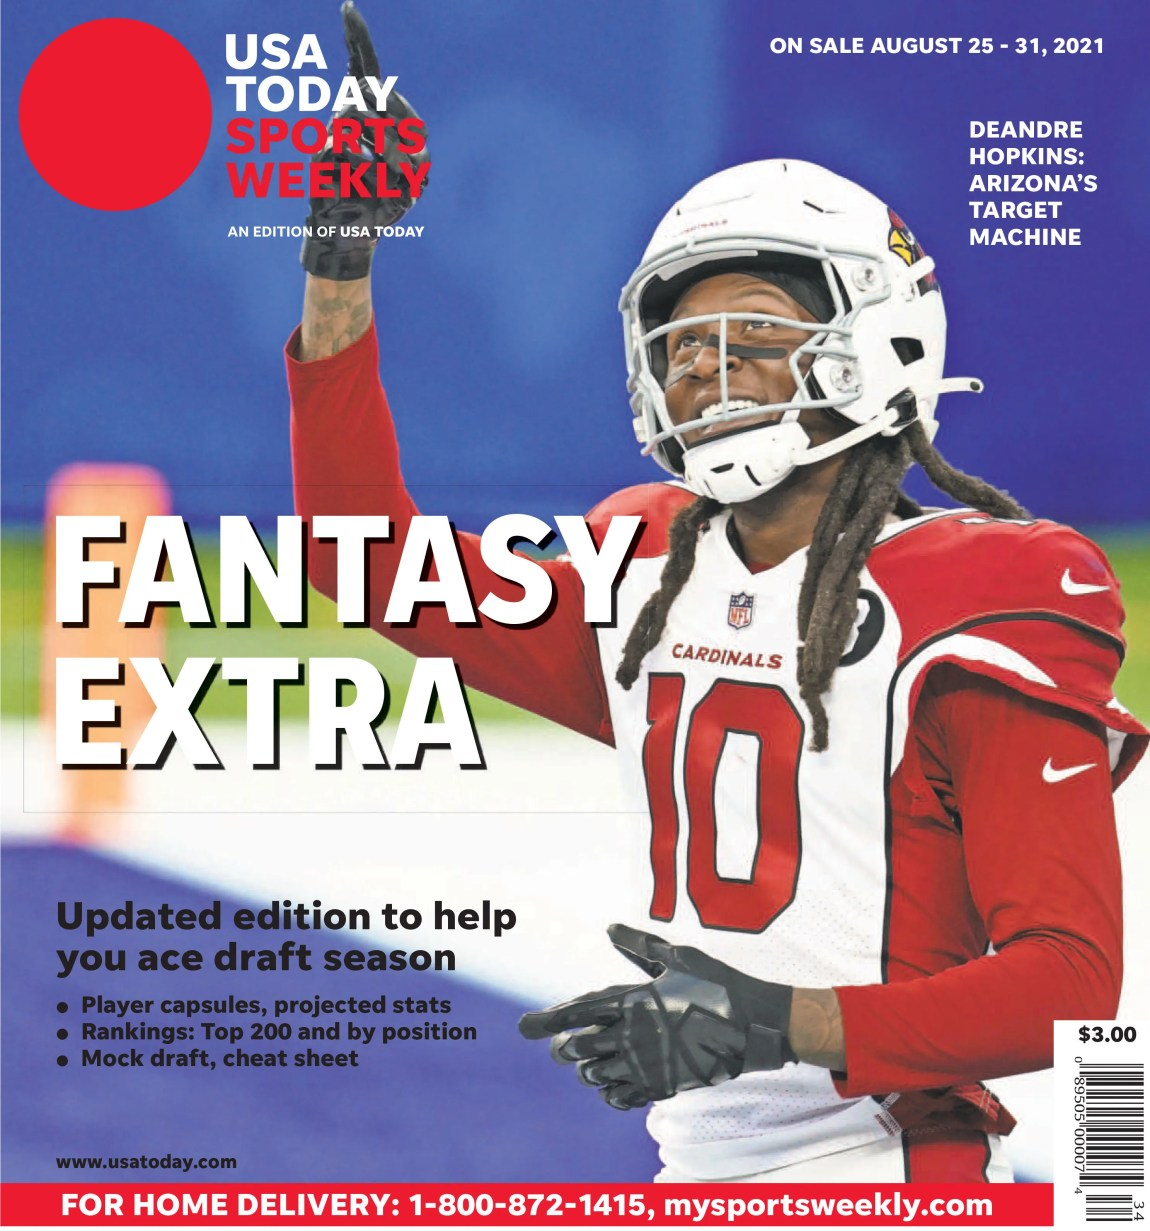 Cardinals WR DeAndre Hopkins is one of five cover subjects for the USA TODAY Sports Weekly Fantasy Extra issue, available on newsstands through August 31.